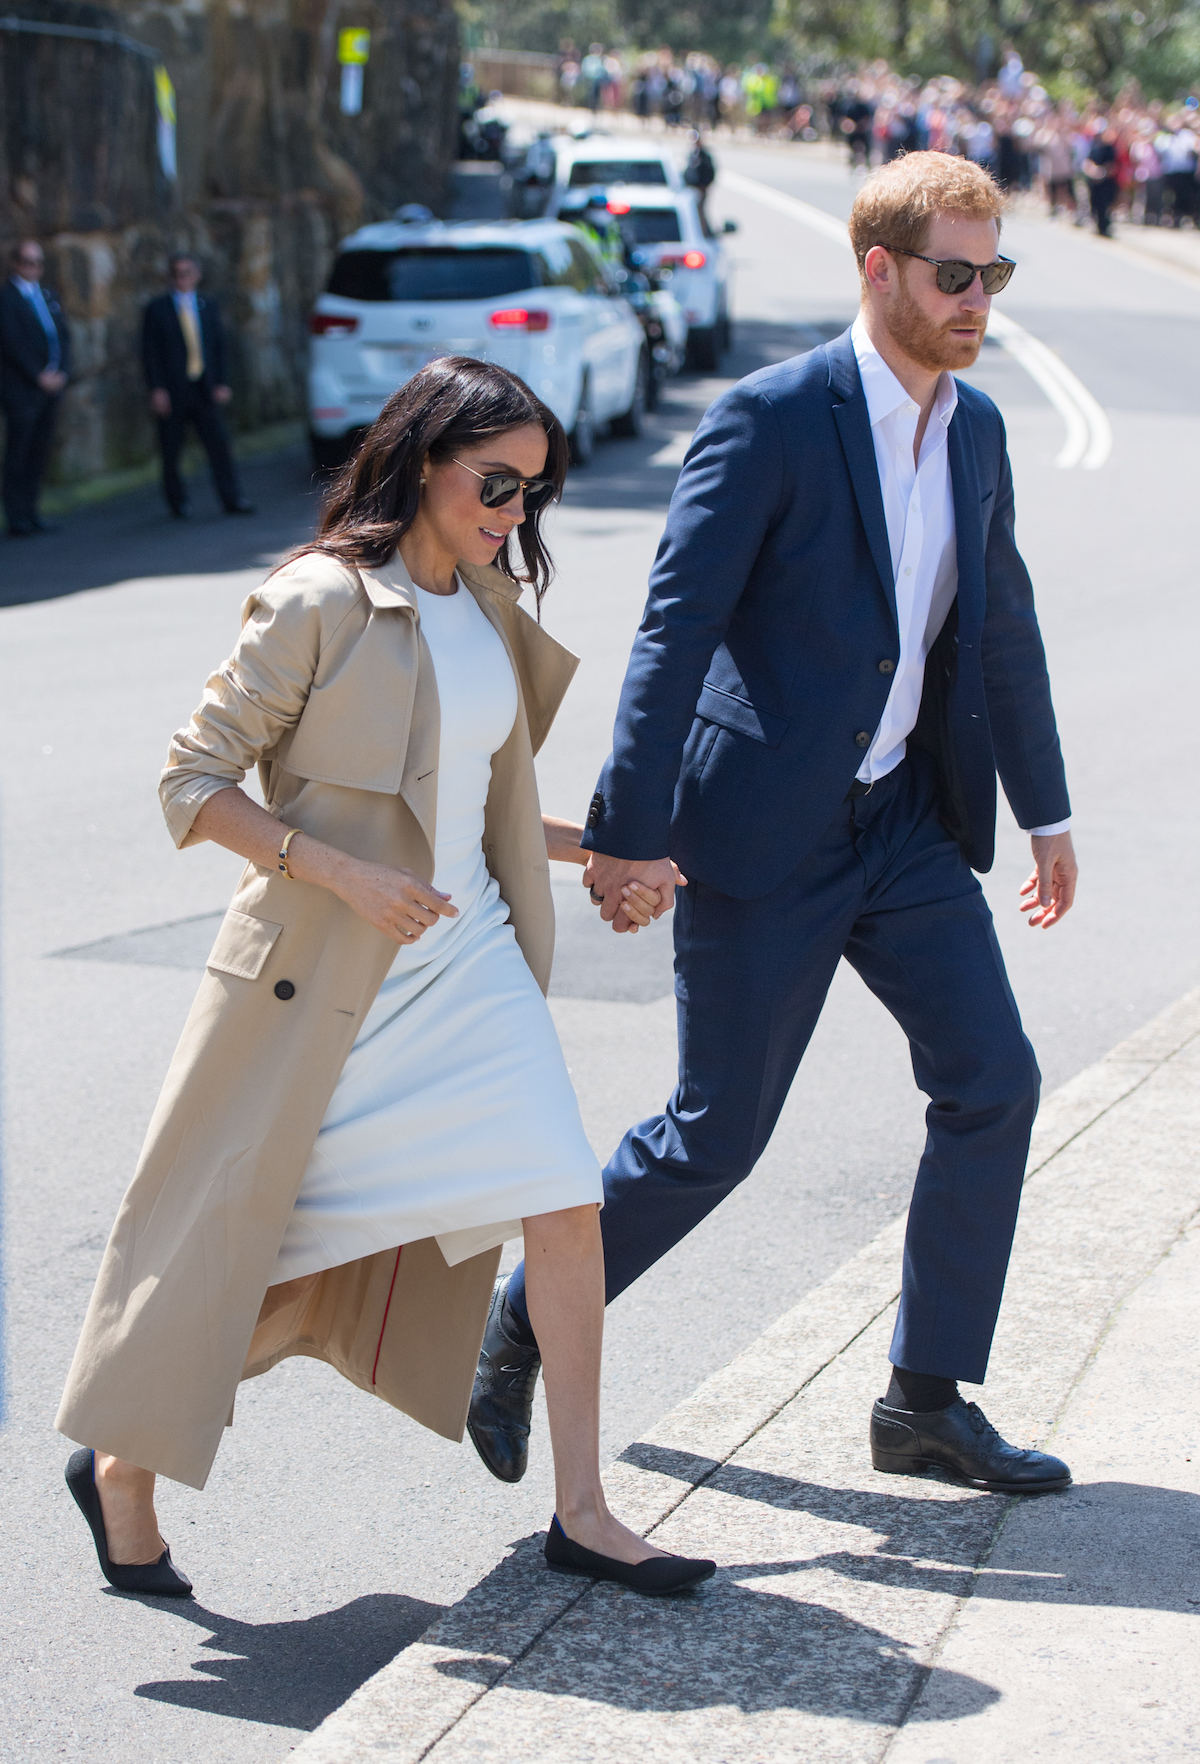 Meghan Markle Wearing Comfortable Rothy's Shoes: Here's Where to Buy Rothys